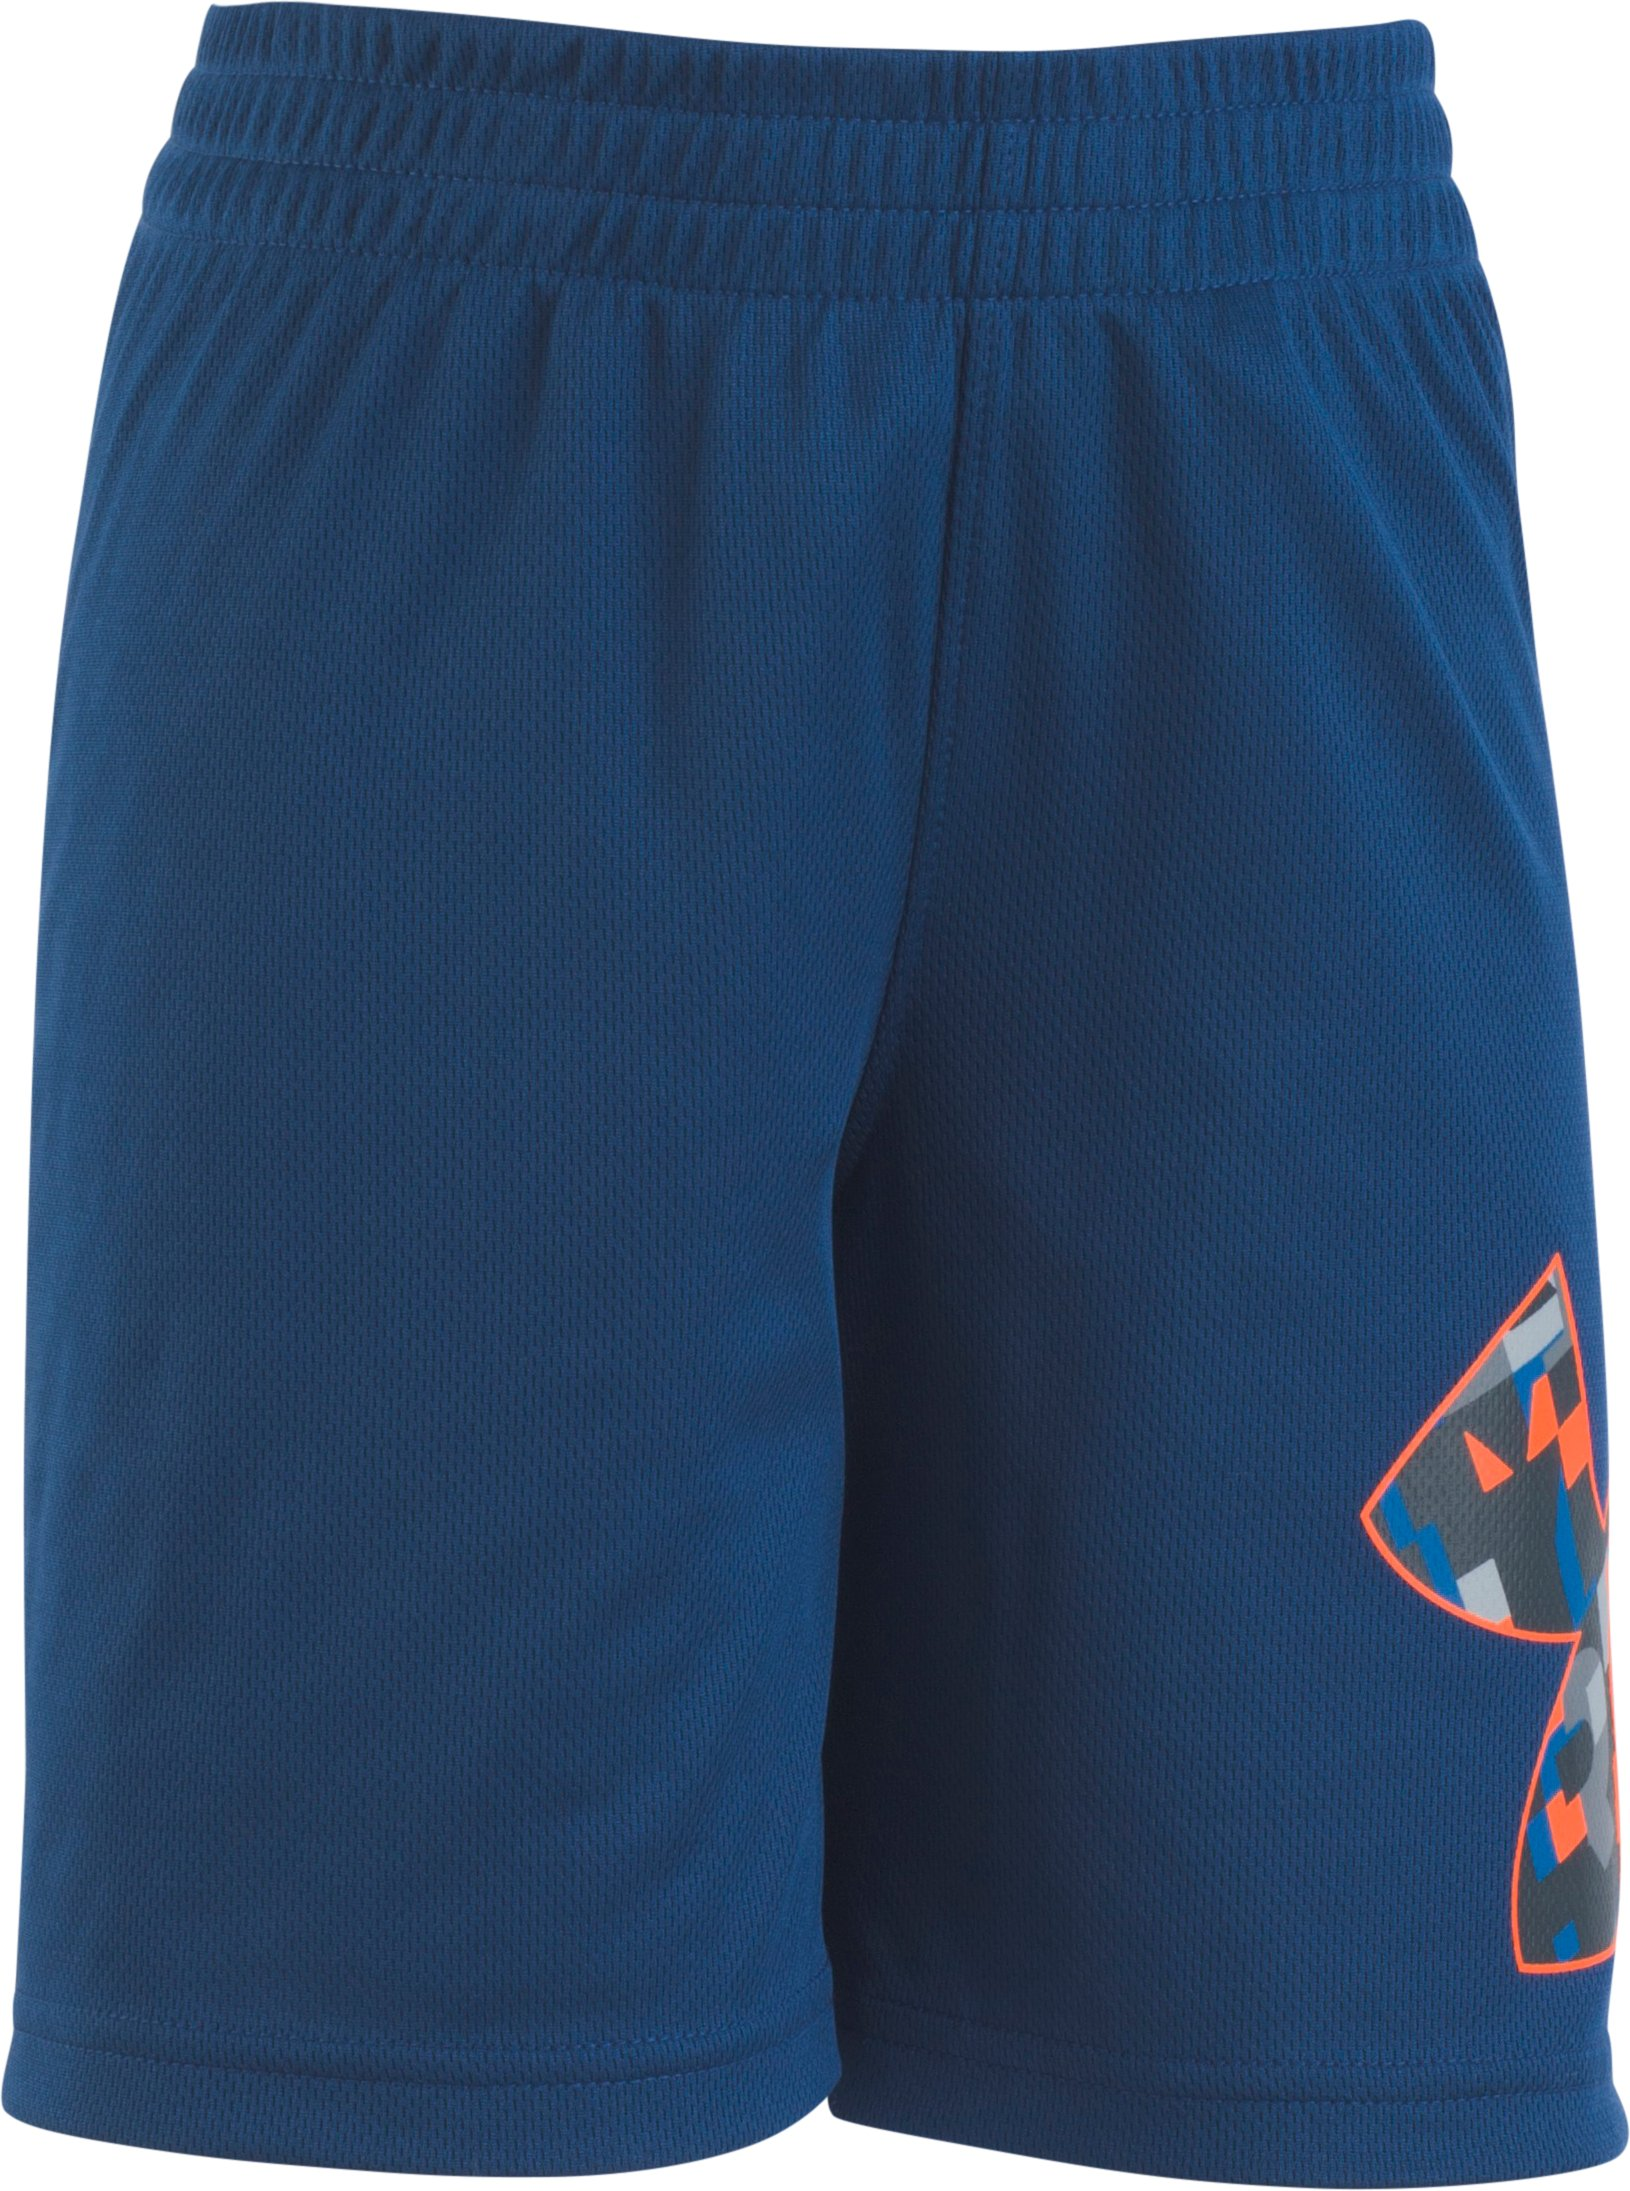 Boys' Pre-School UA Wordmark Striker Shorts, Moroccan Blue